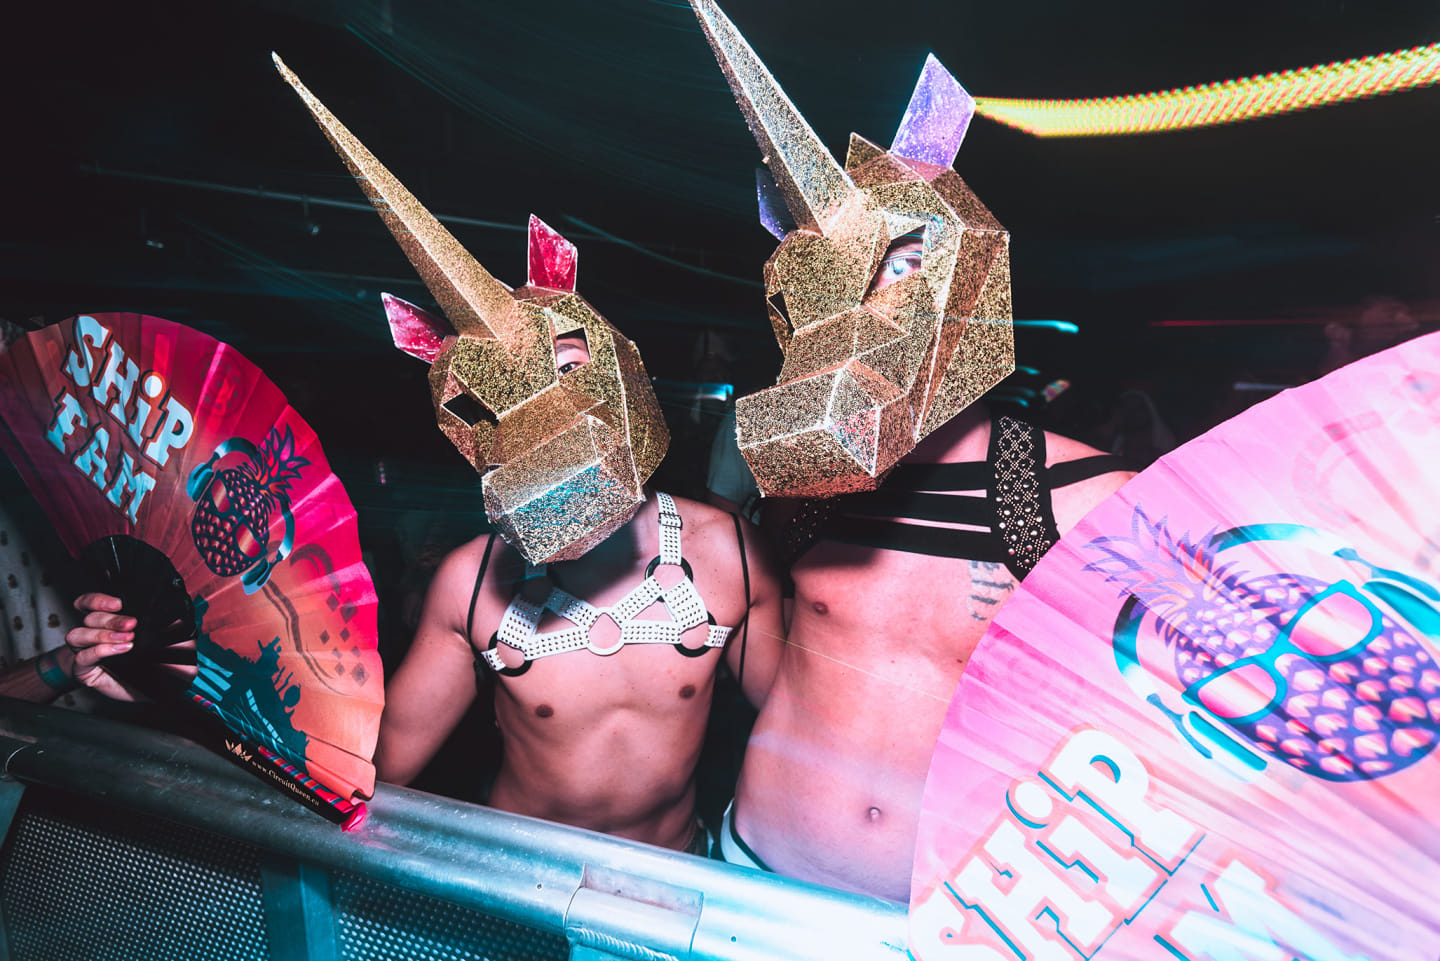 Death, grief, and designer sunglasses on an EDM cruise to nowhere